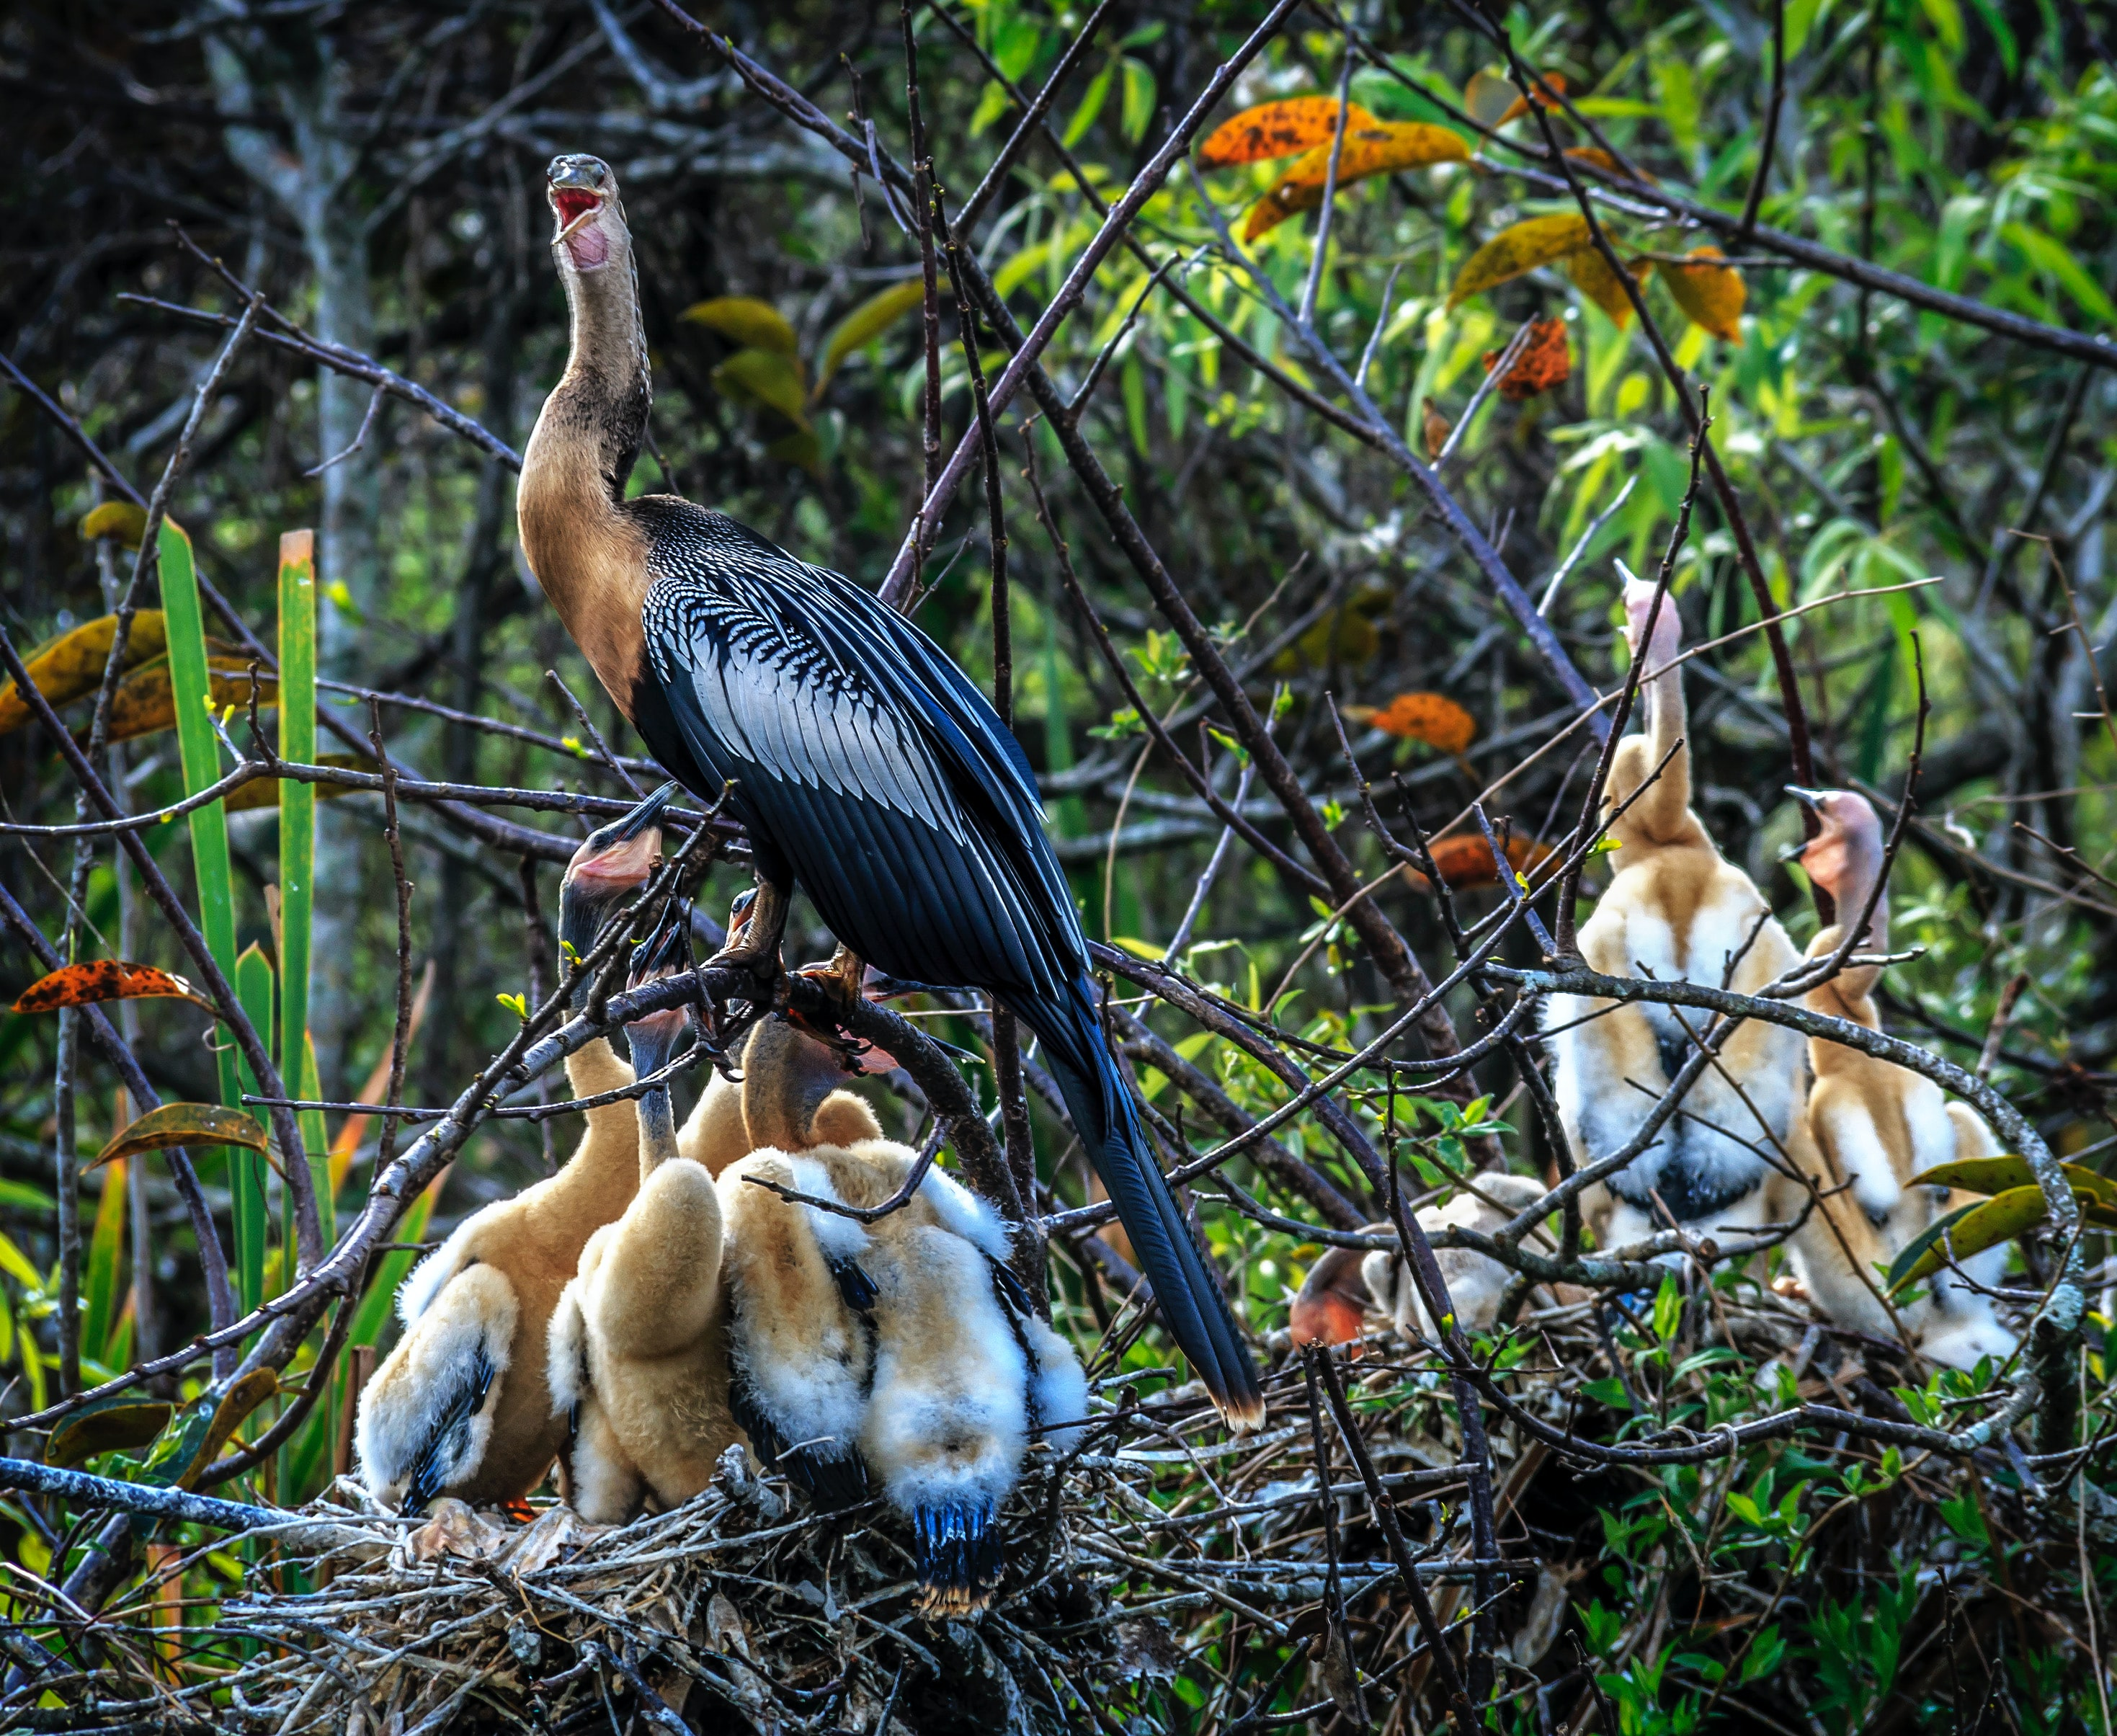 A bird with its brood in a tropical nest.